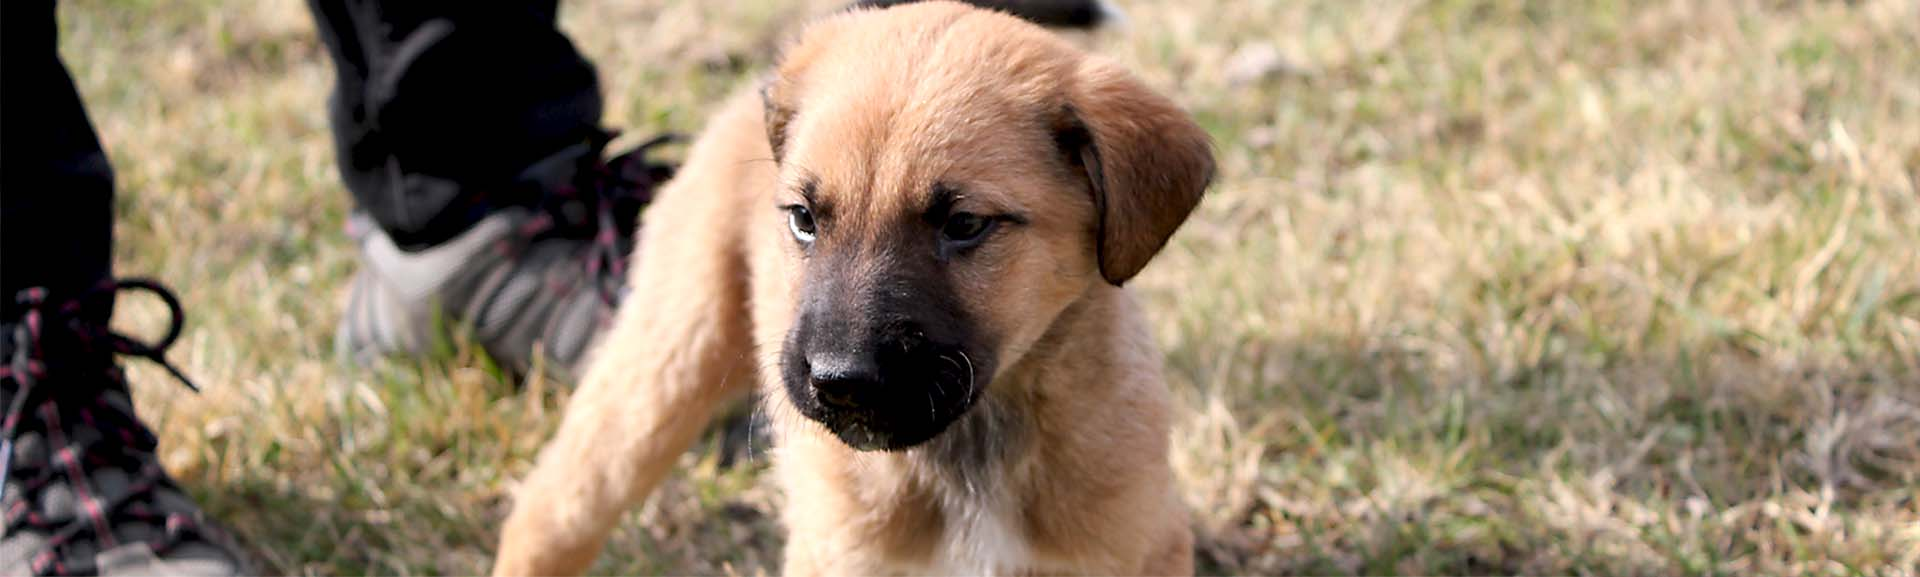 Working to secure safer lives for free-roaming dogs in Georgia